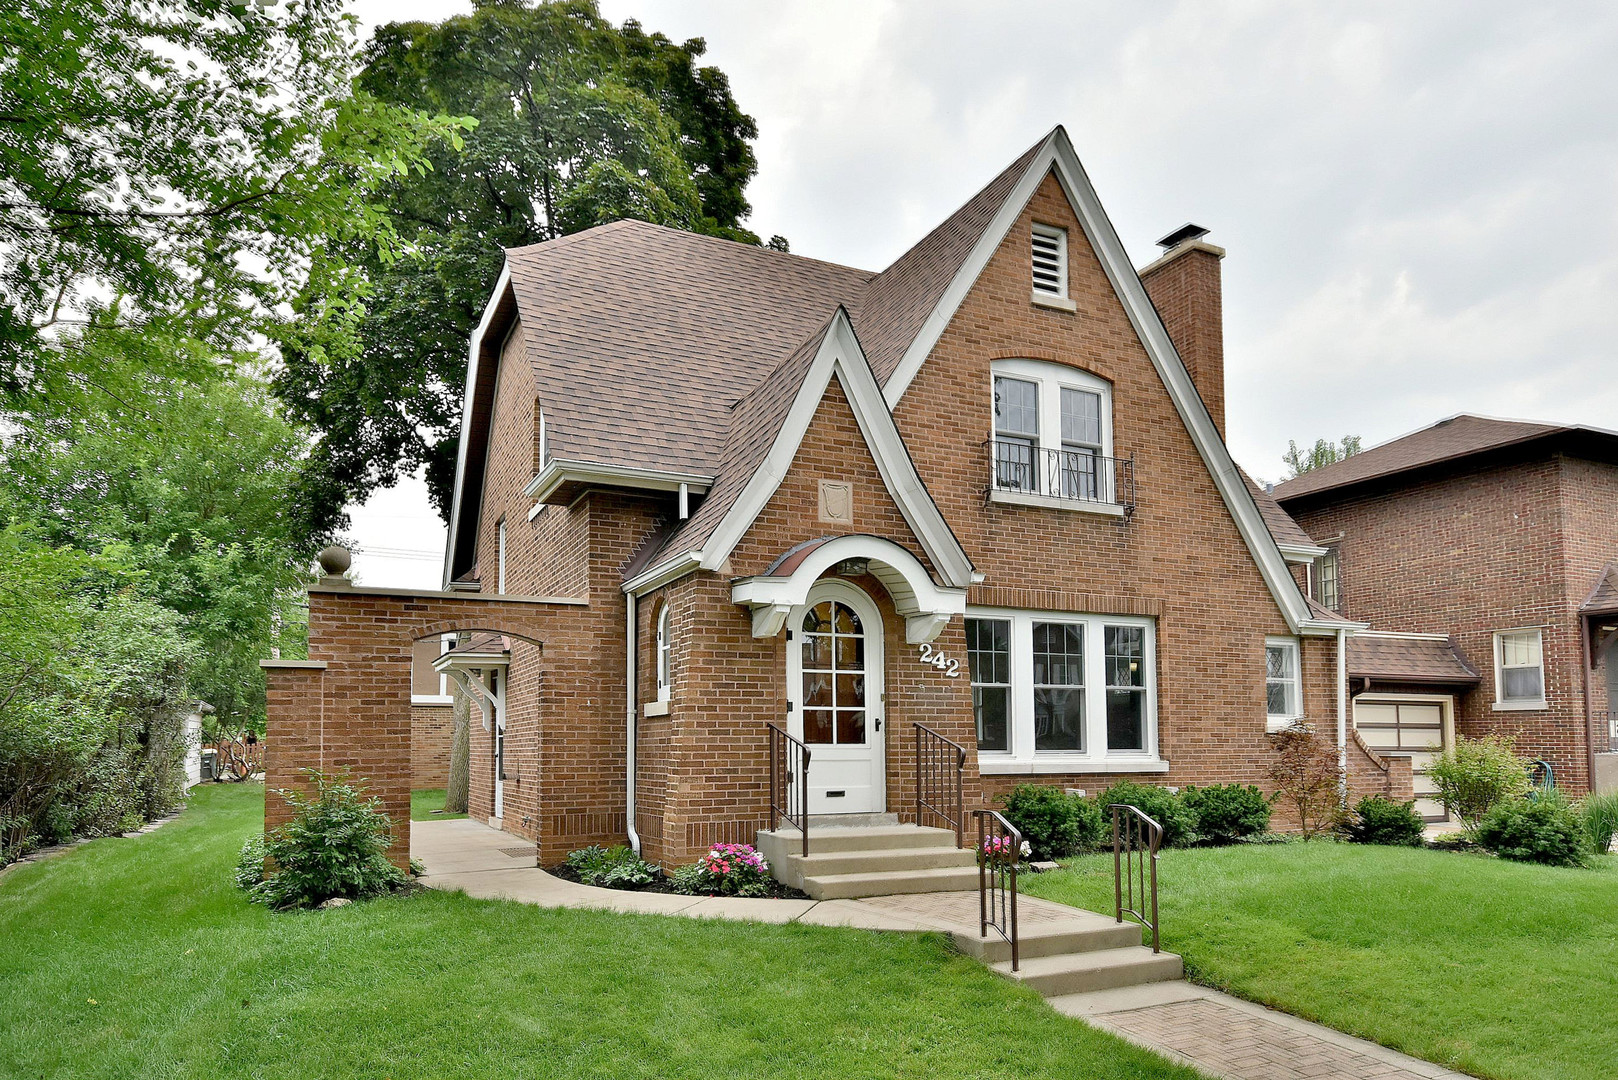 Home For Sale At 242 Gillick Street In Park Ridge, Illinois For $629,900